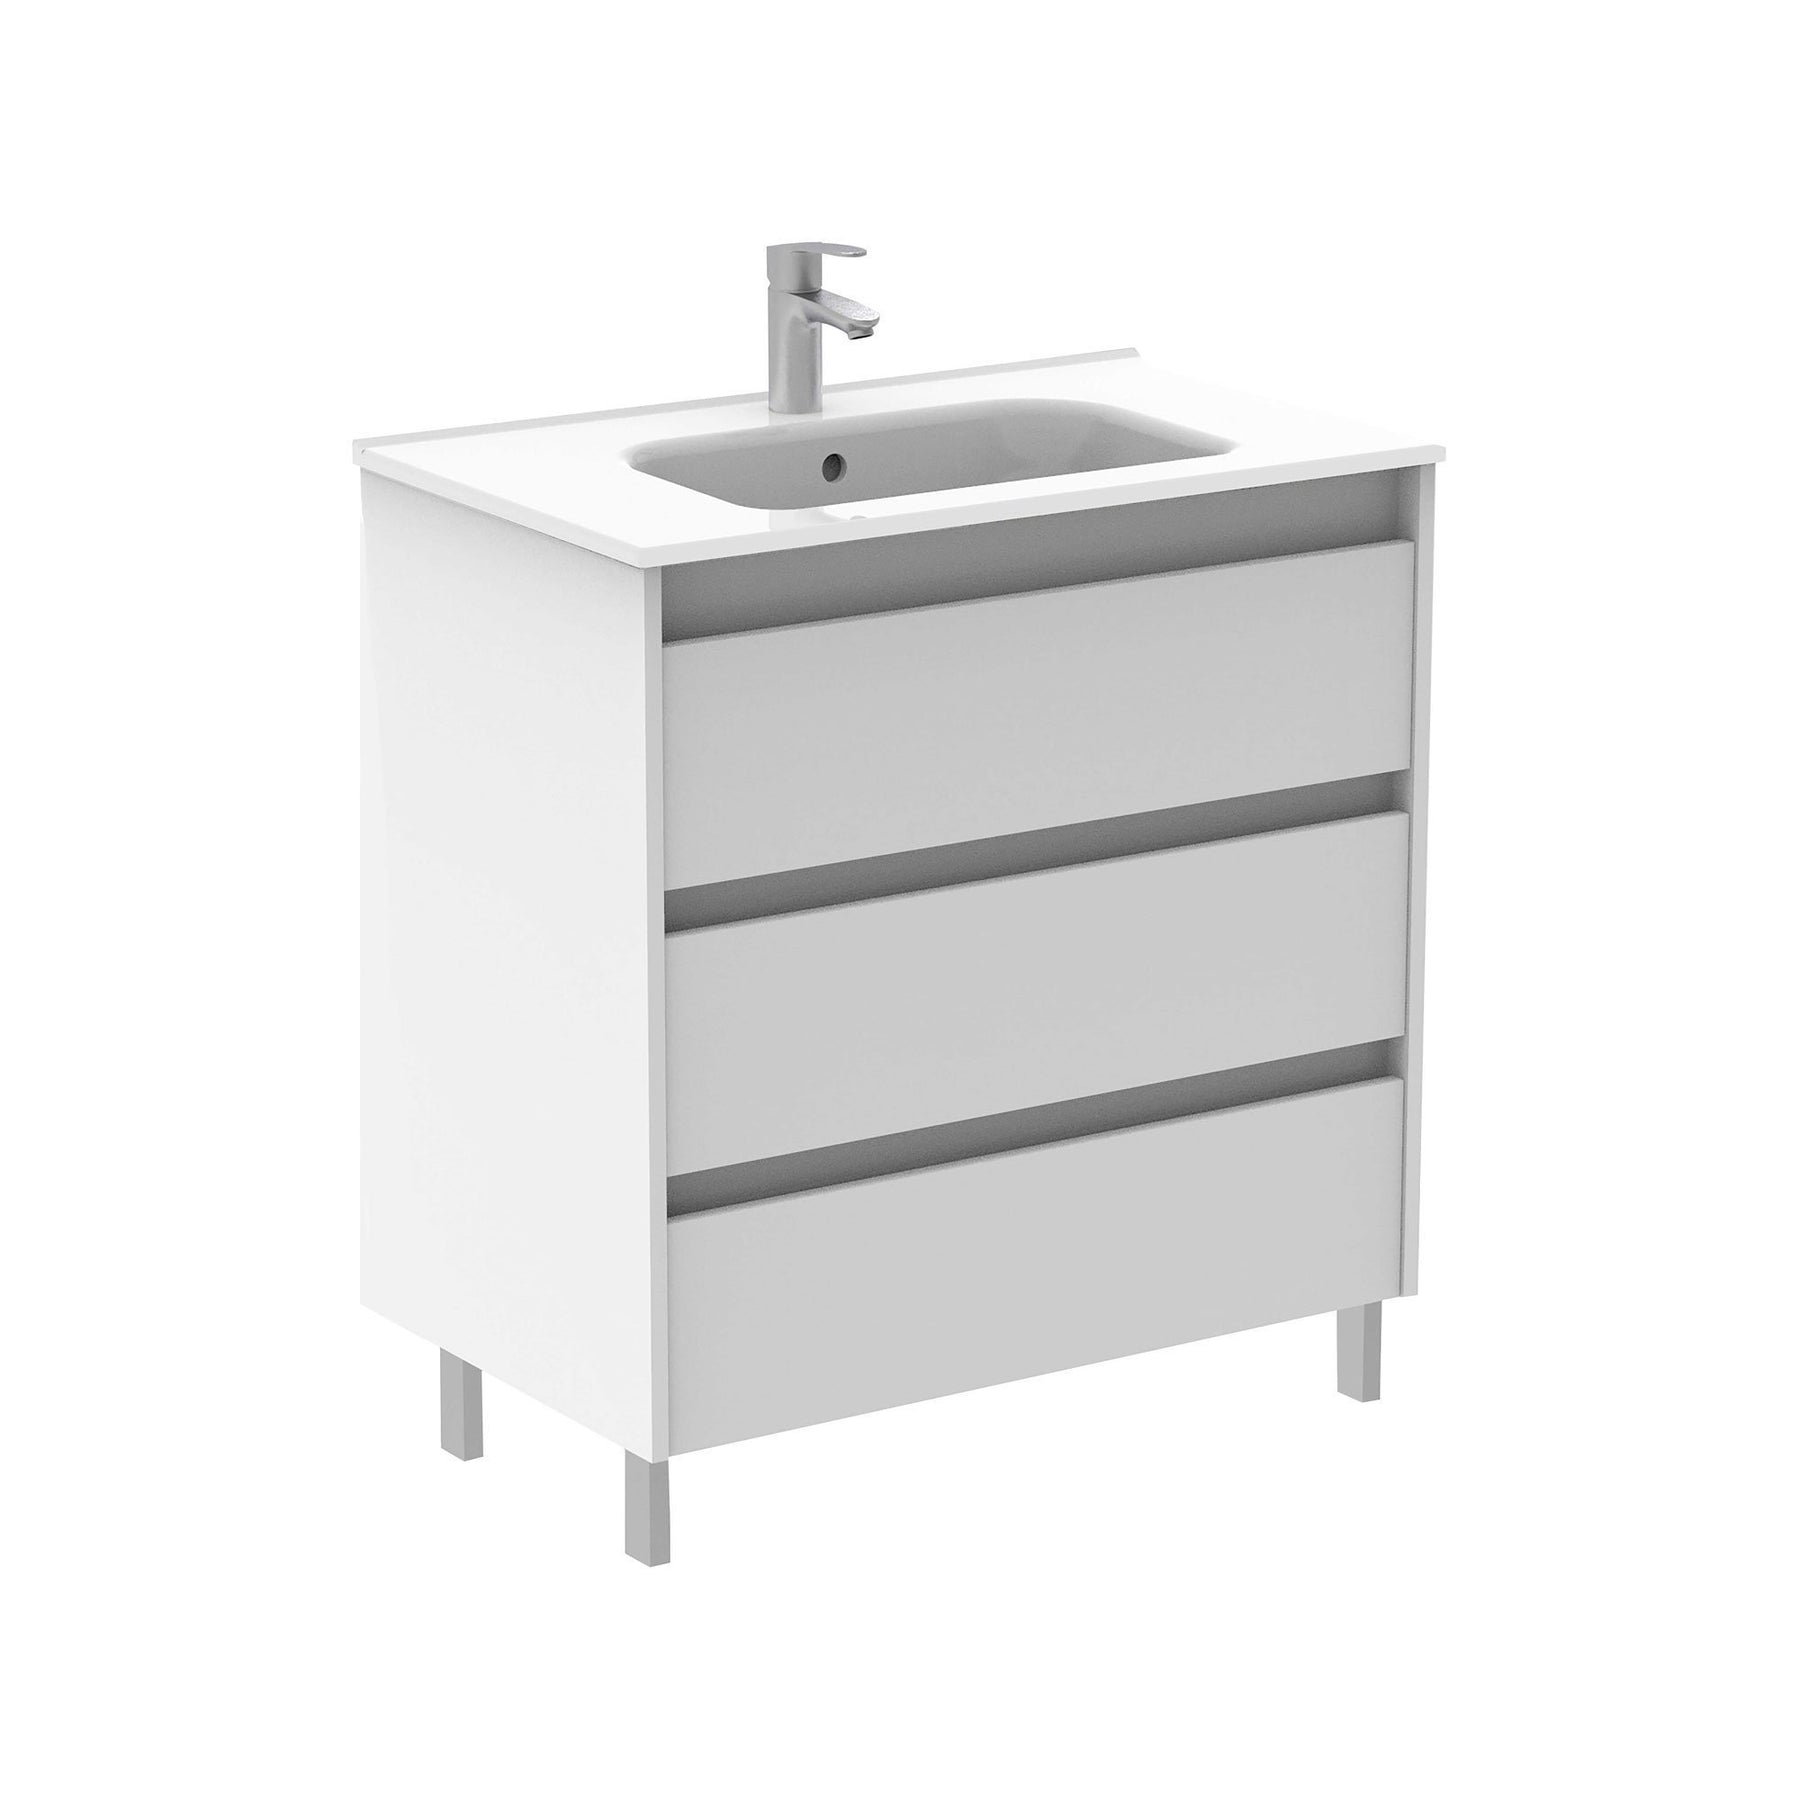 Sku 125480 123343 Item 125480 123343 Brand Royo Sansa 32 Inches Modern Standing Bathroom Vanity 3 Drawer White With Basin Bathroom Vanities And Sink Consoles Royo White 1200 00 1300 00 Free Standing Engineered Wood Ceramic 30 To 34 Inches